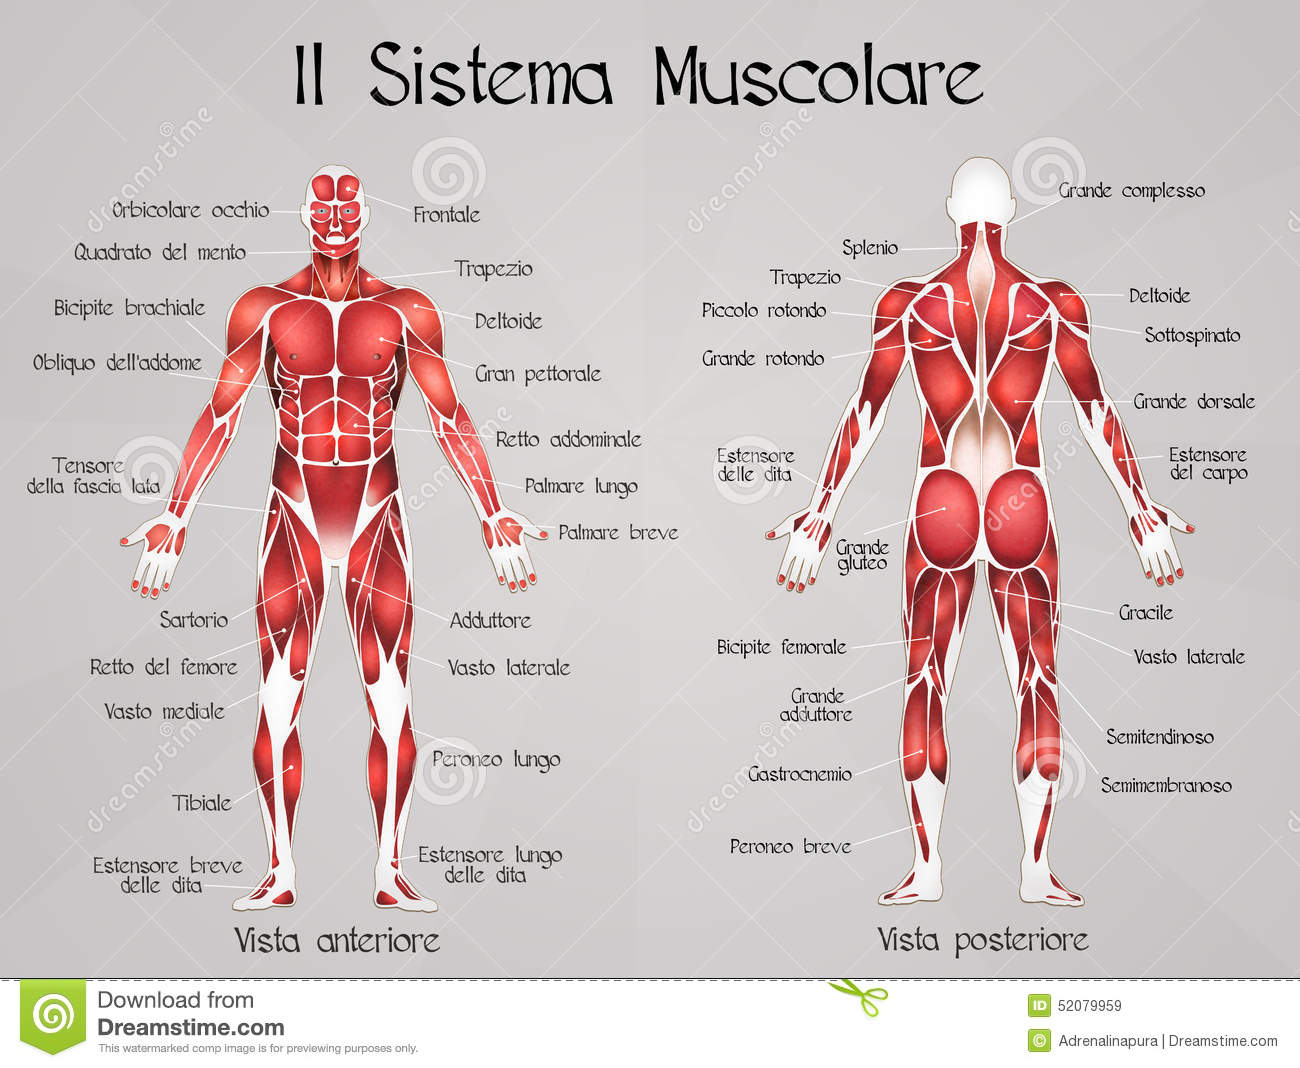 the muscular system stock illustration - image: 52079959, Muscles